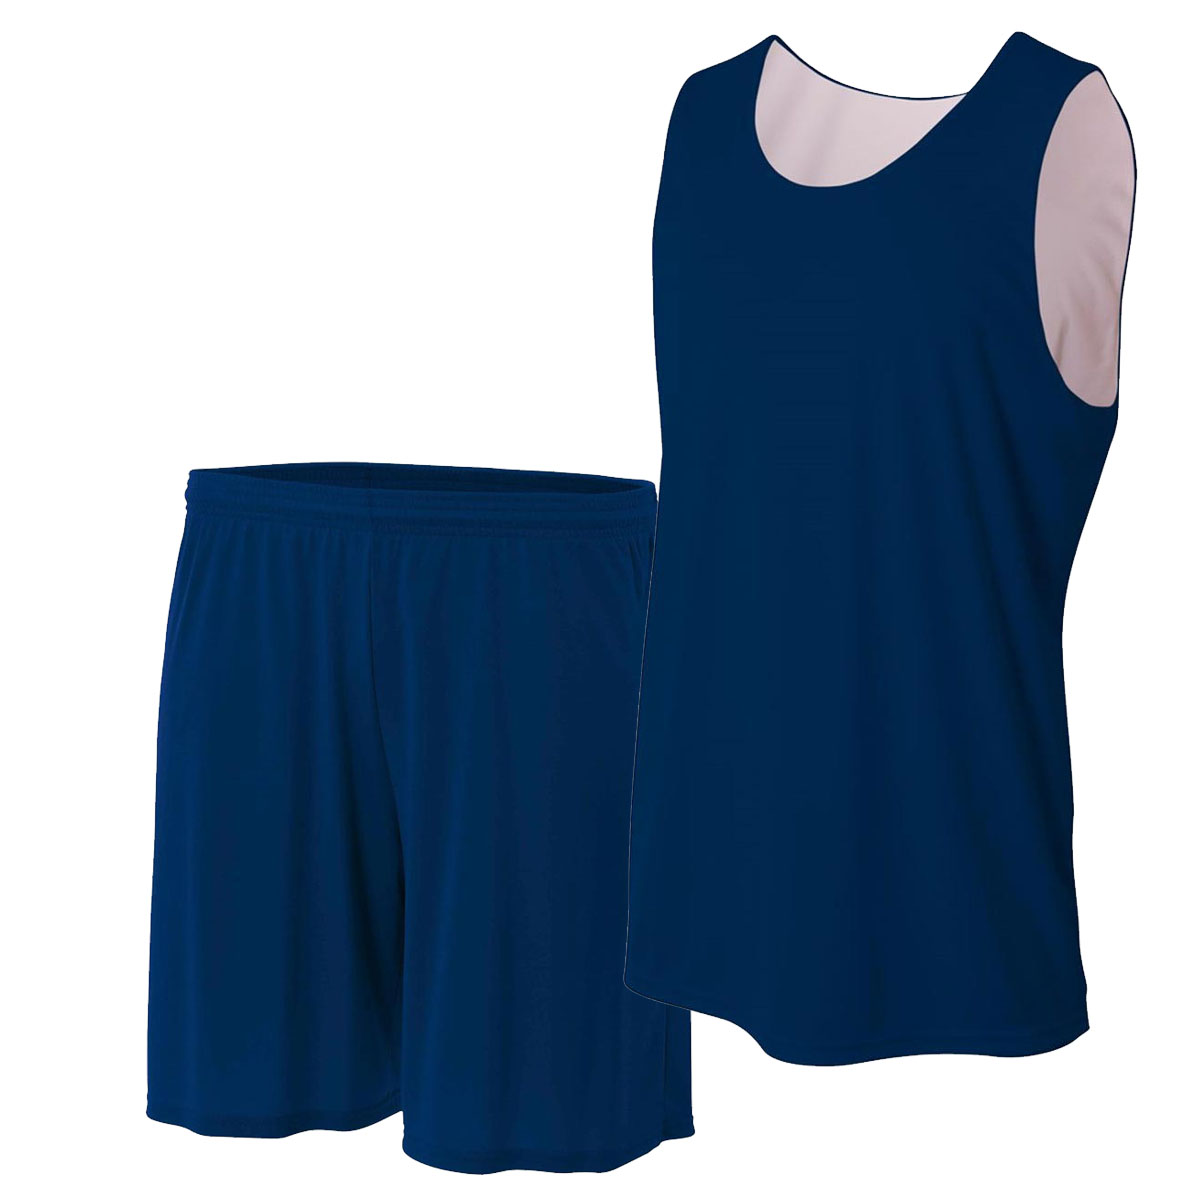 Reversible Basketball Uniforms Manufacturers in Tiruchirappalli